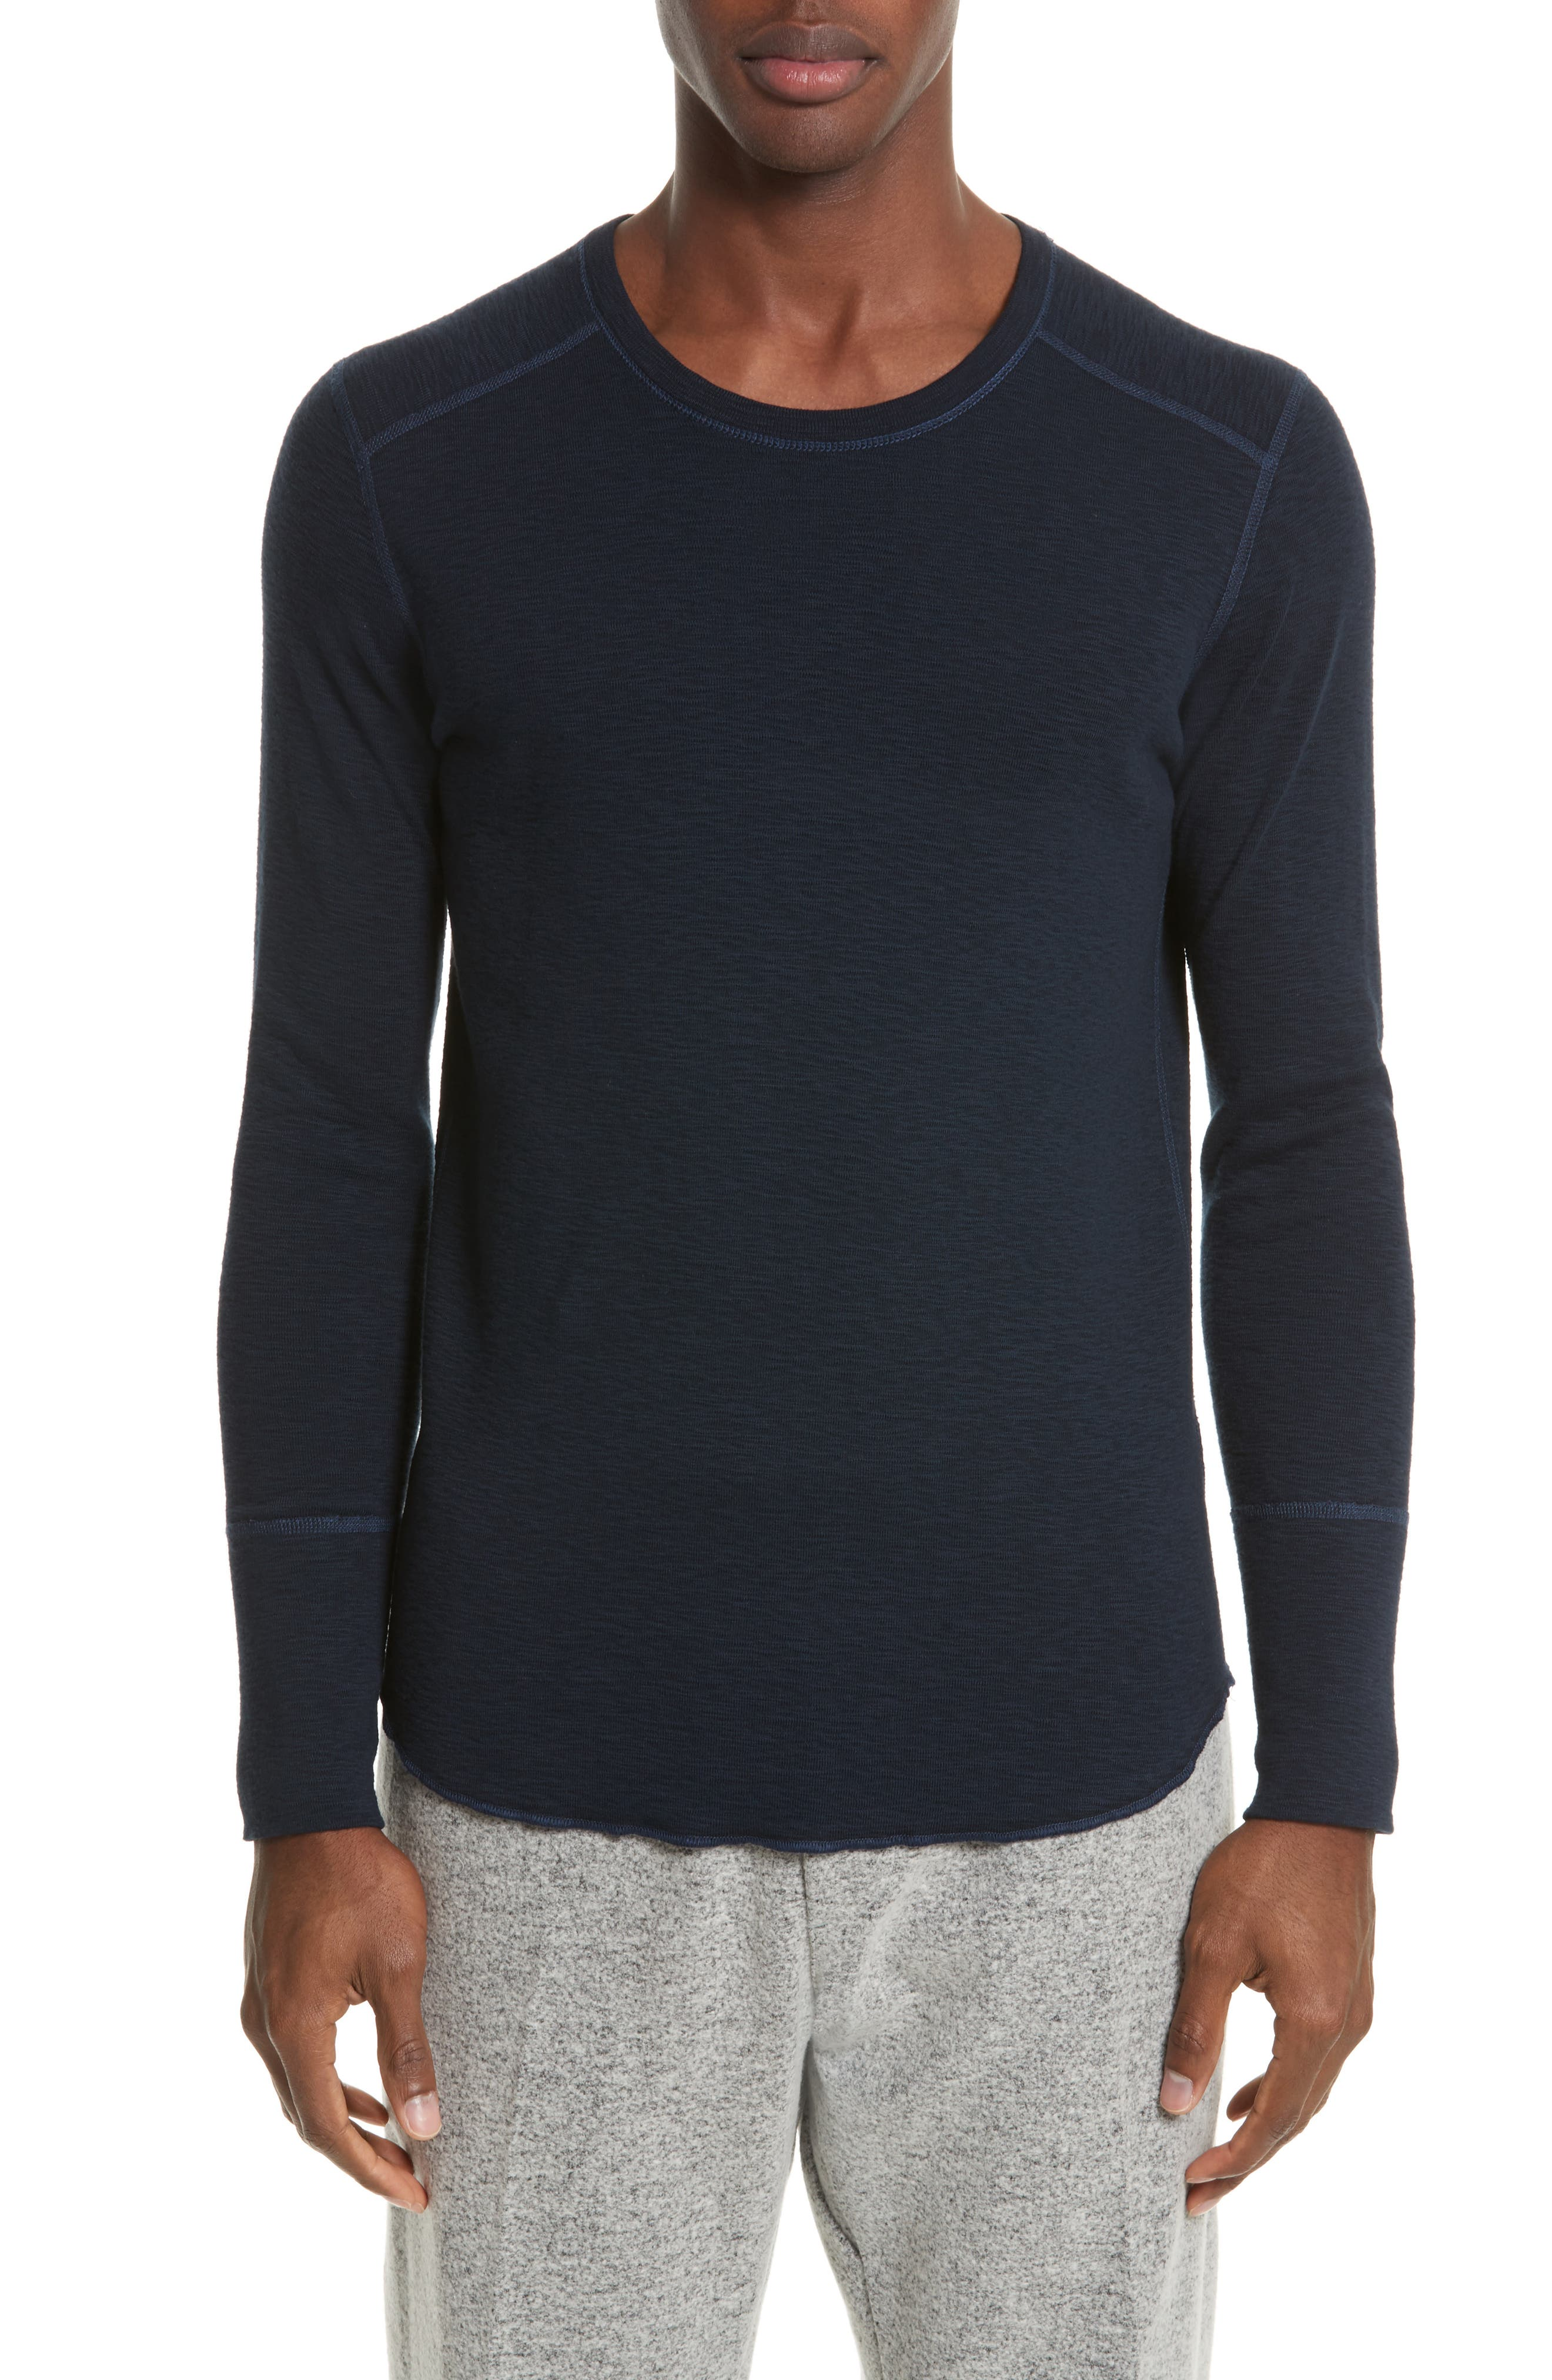 WINGS + HORNS Slub Crewneck Sweater in Navy